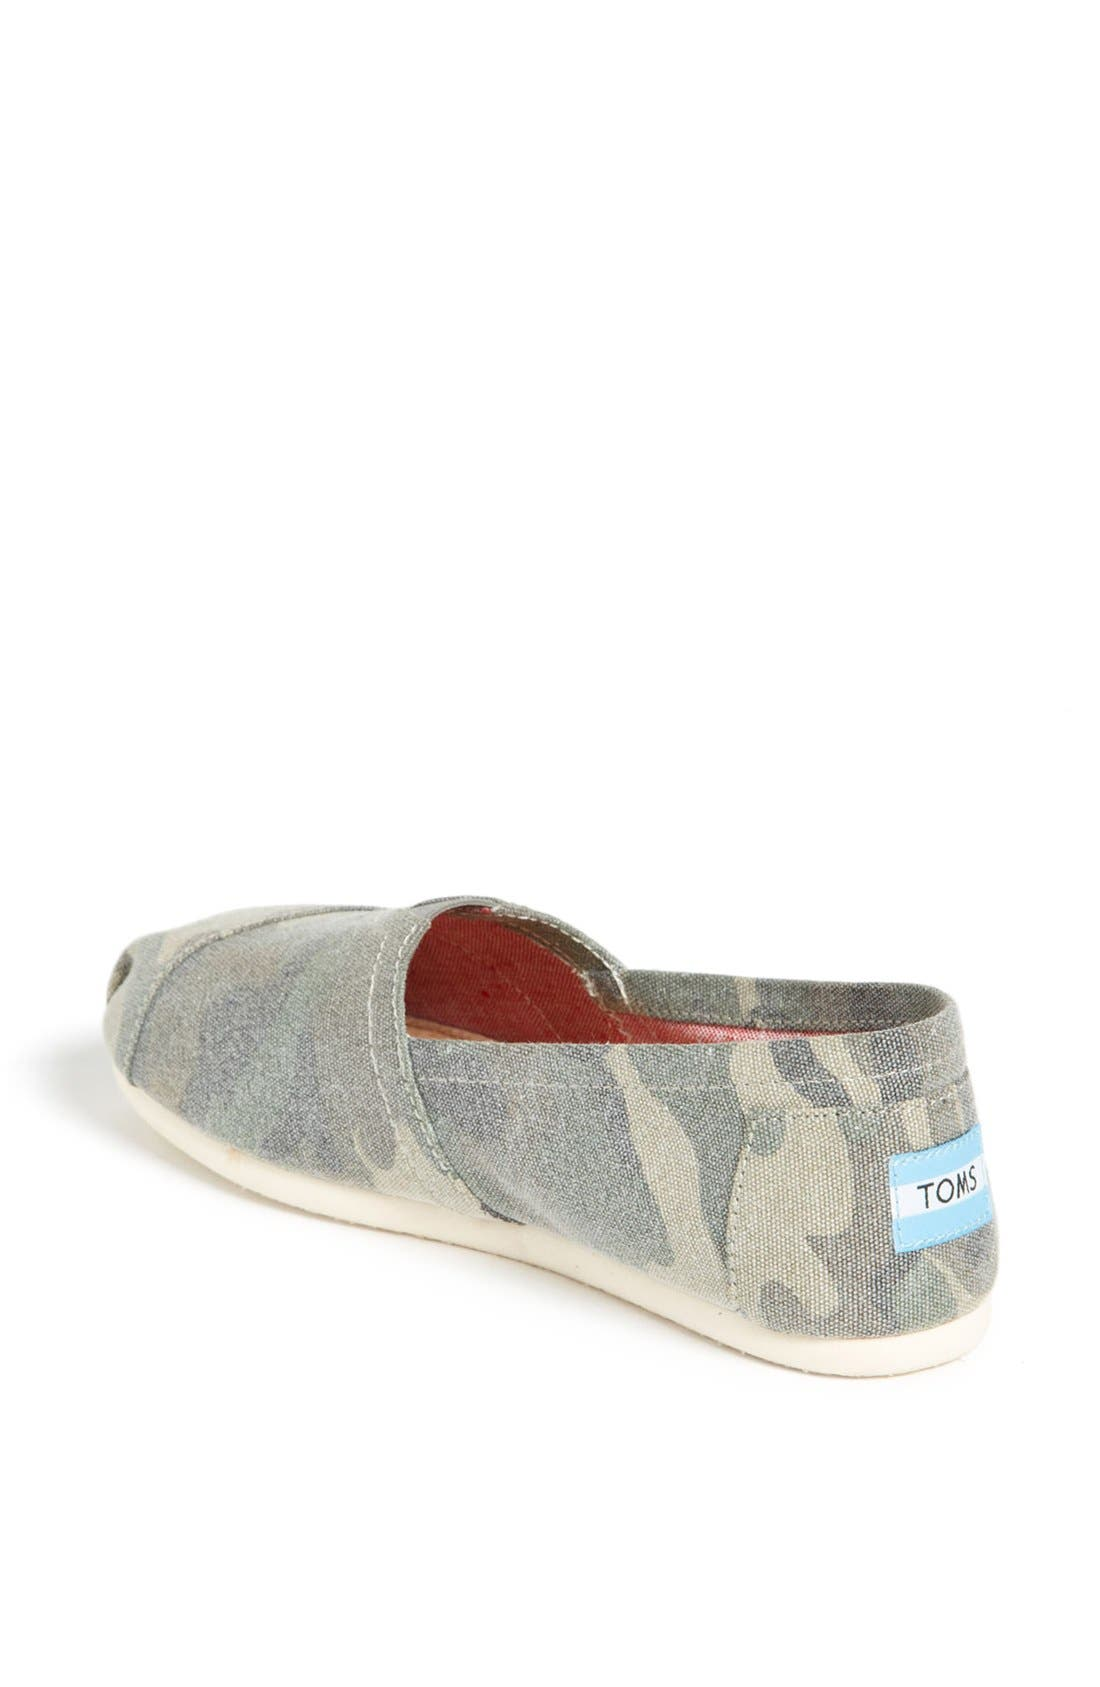 Alternate Image 2  - TOMS 'Classic - Camo' Canvas Slip-On (Women)